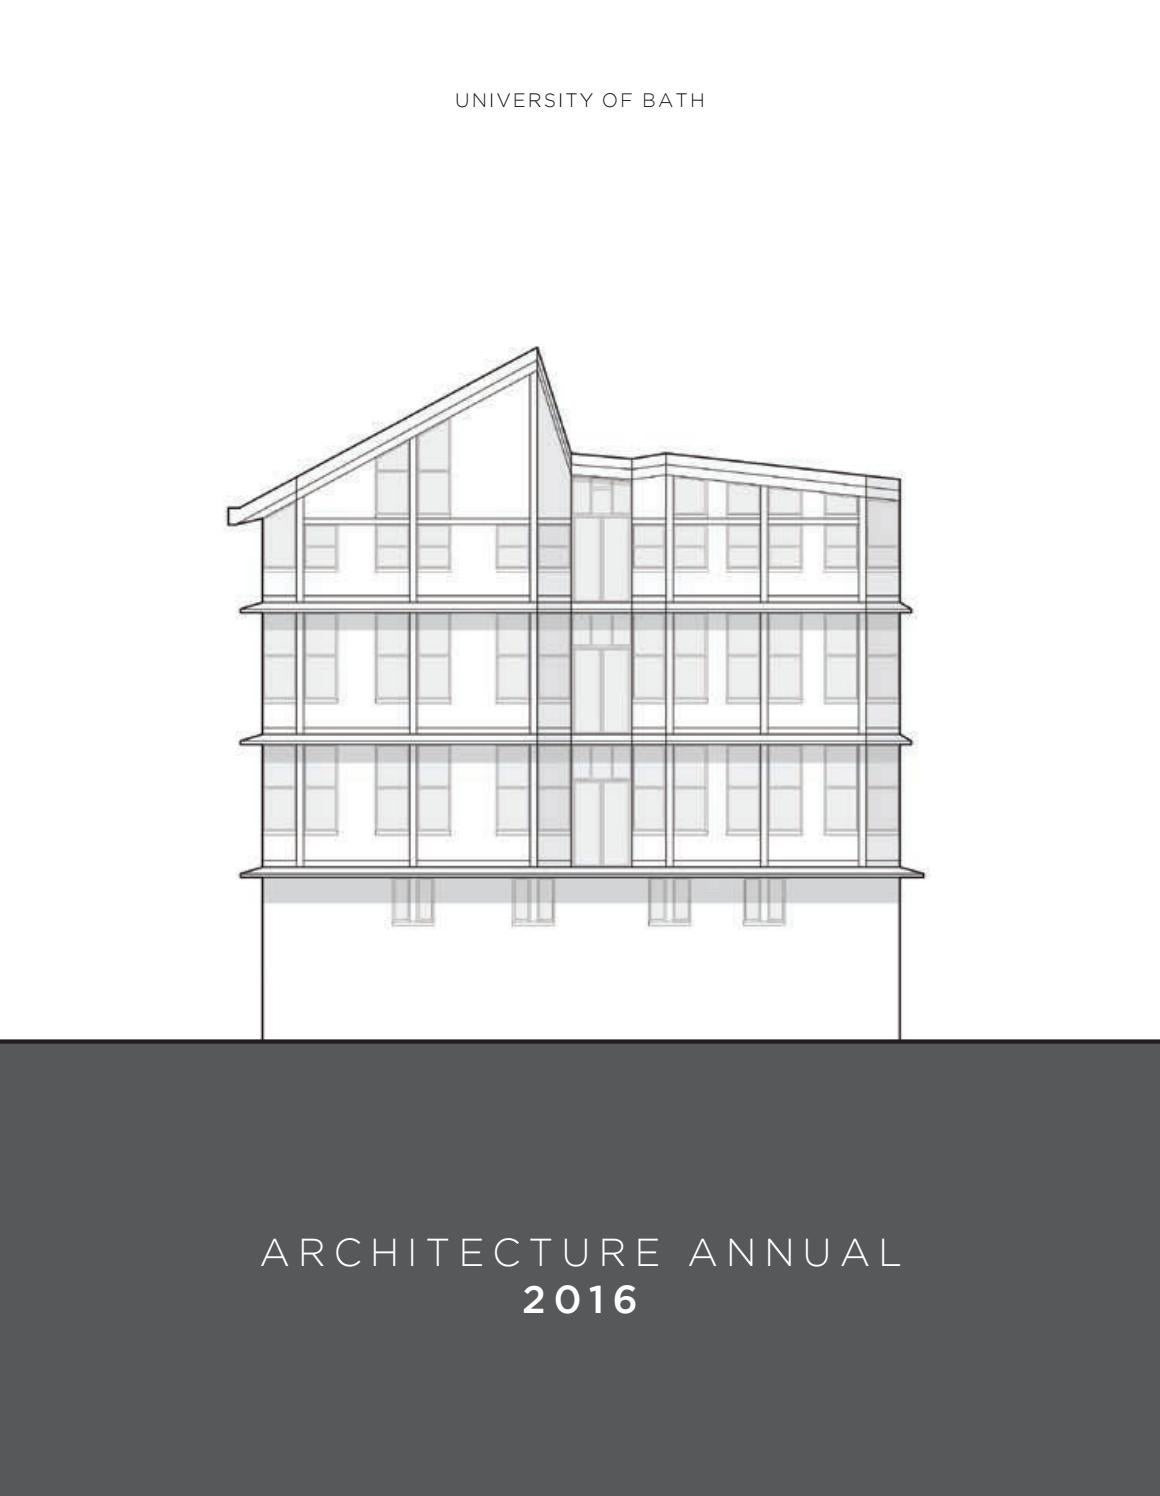 hight resolution of university of bath architecture annual 2016 by faculty of engineering design issuu